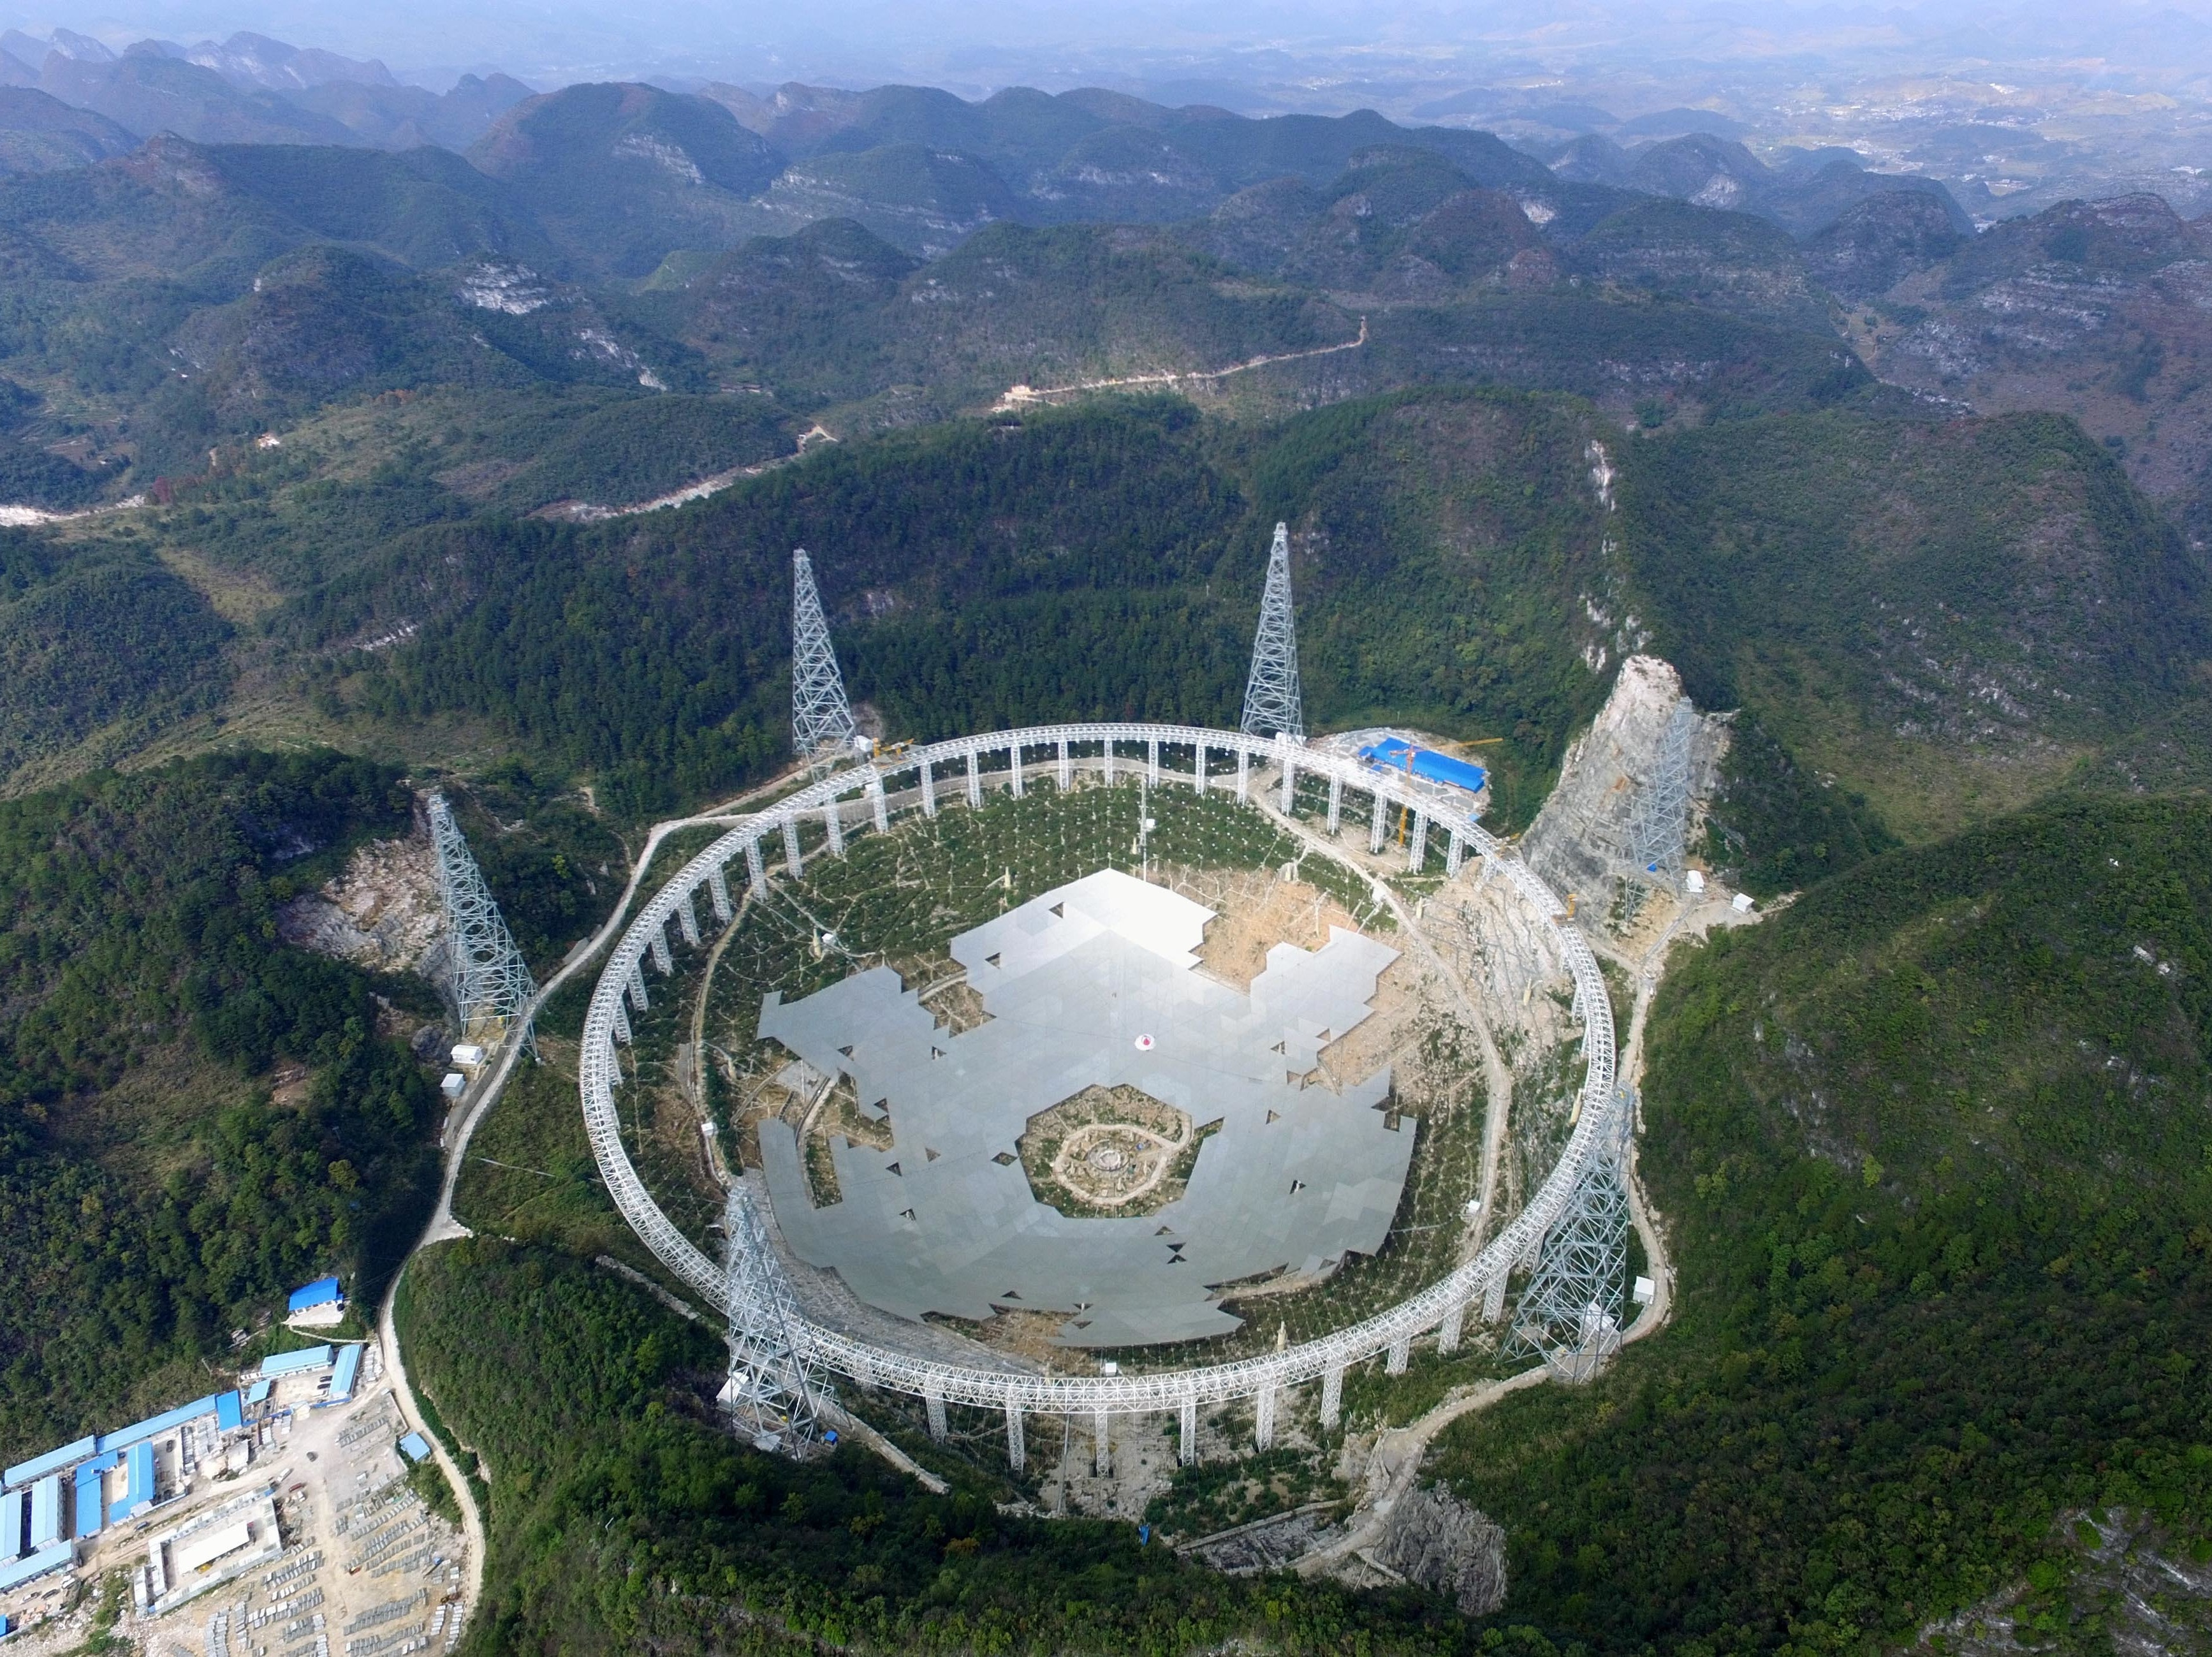 Breakthrough Initiatives Enlists China in Hunt for Aliens